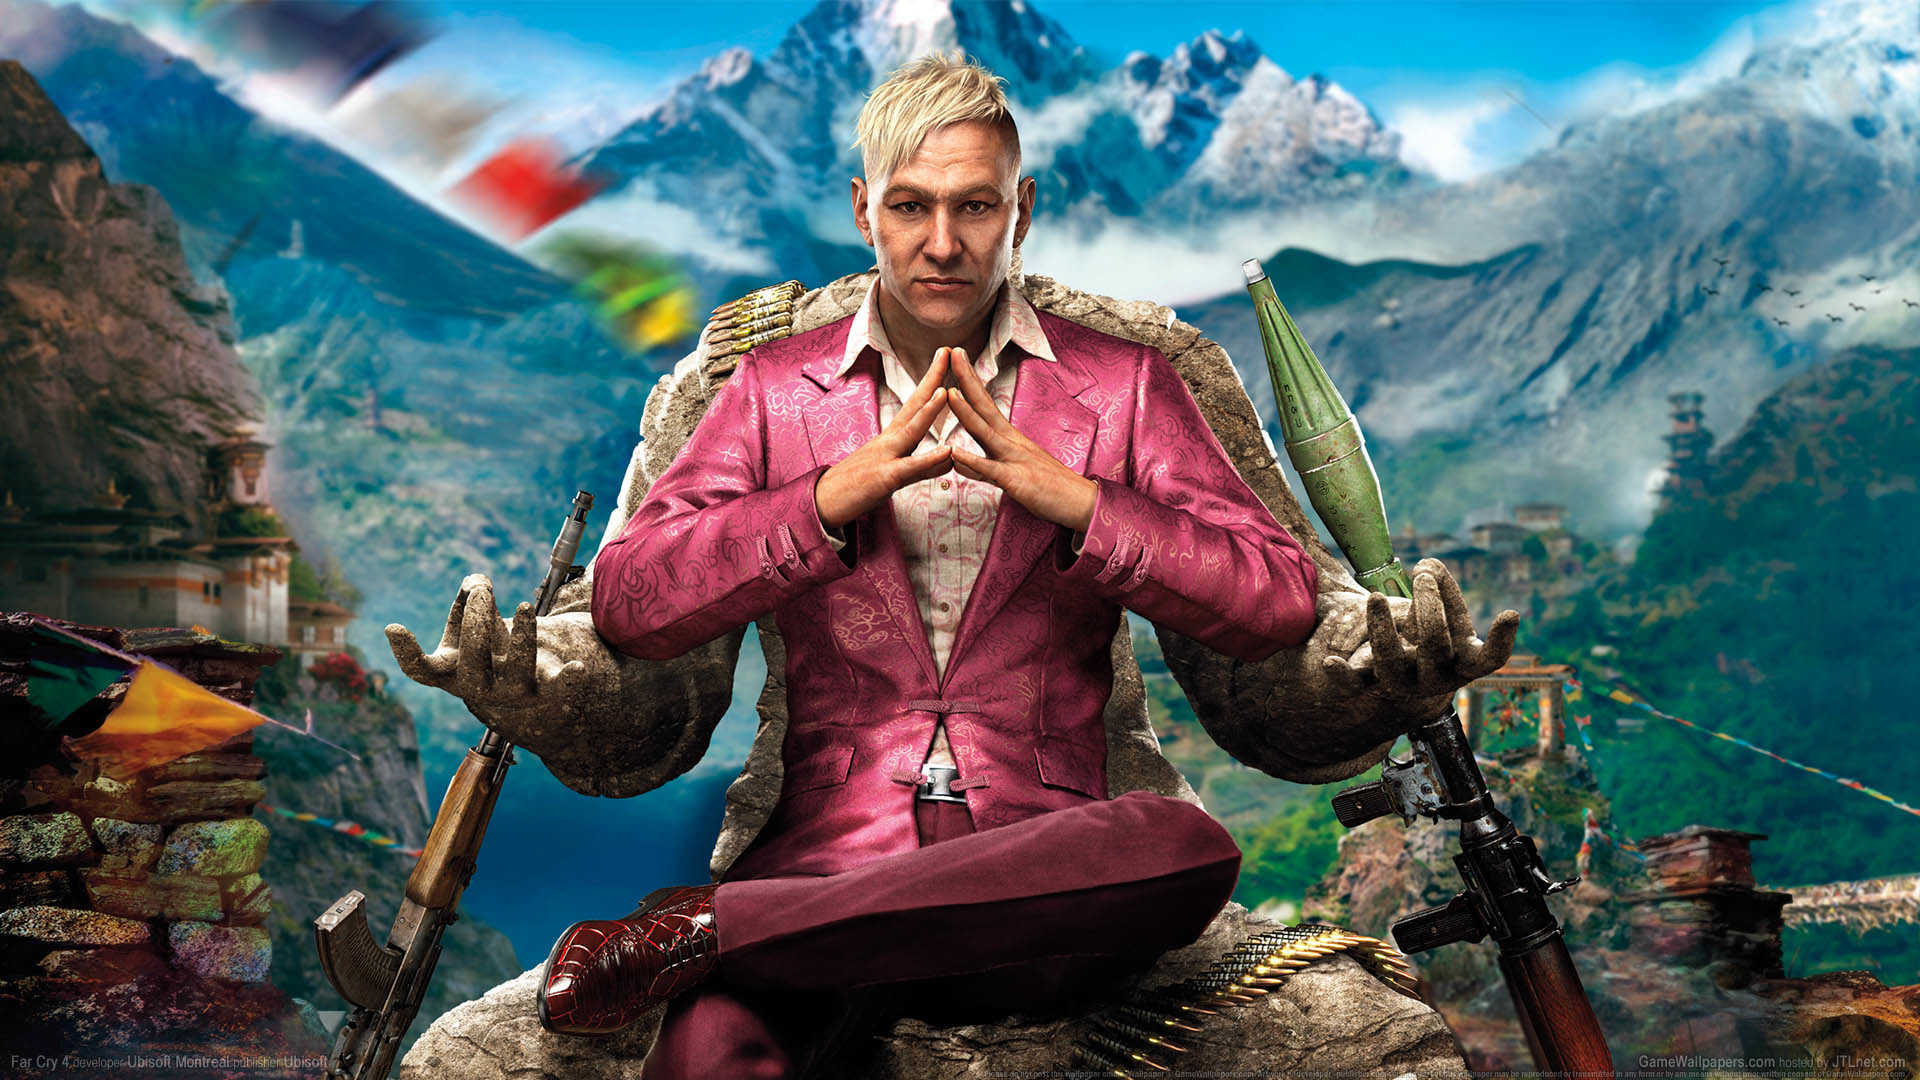 1920x1080 Far Cry 4 wallpaper or background Far Cry 4 wallpaper or background 01